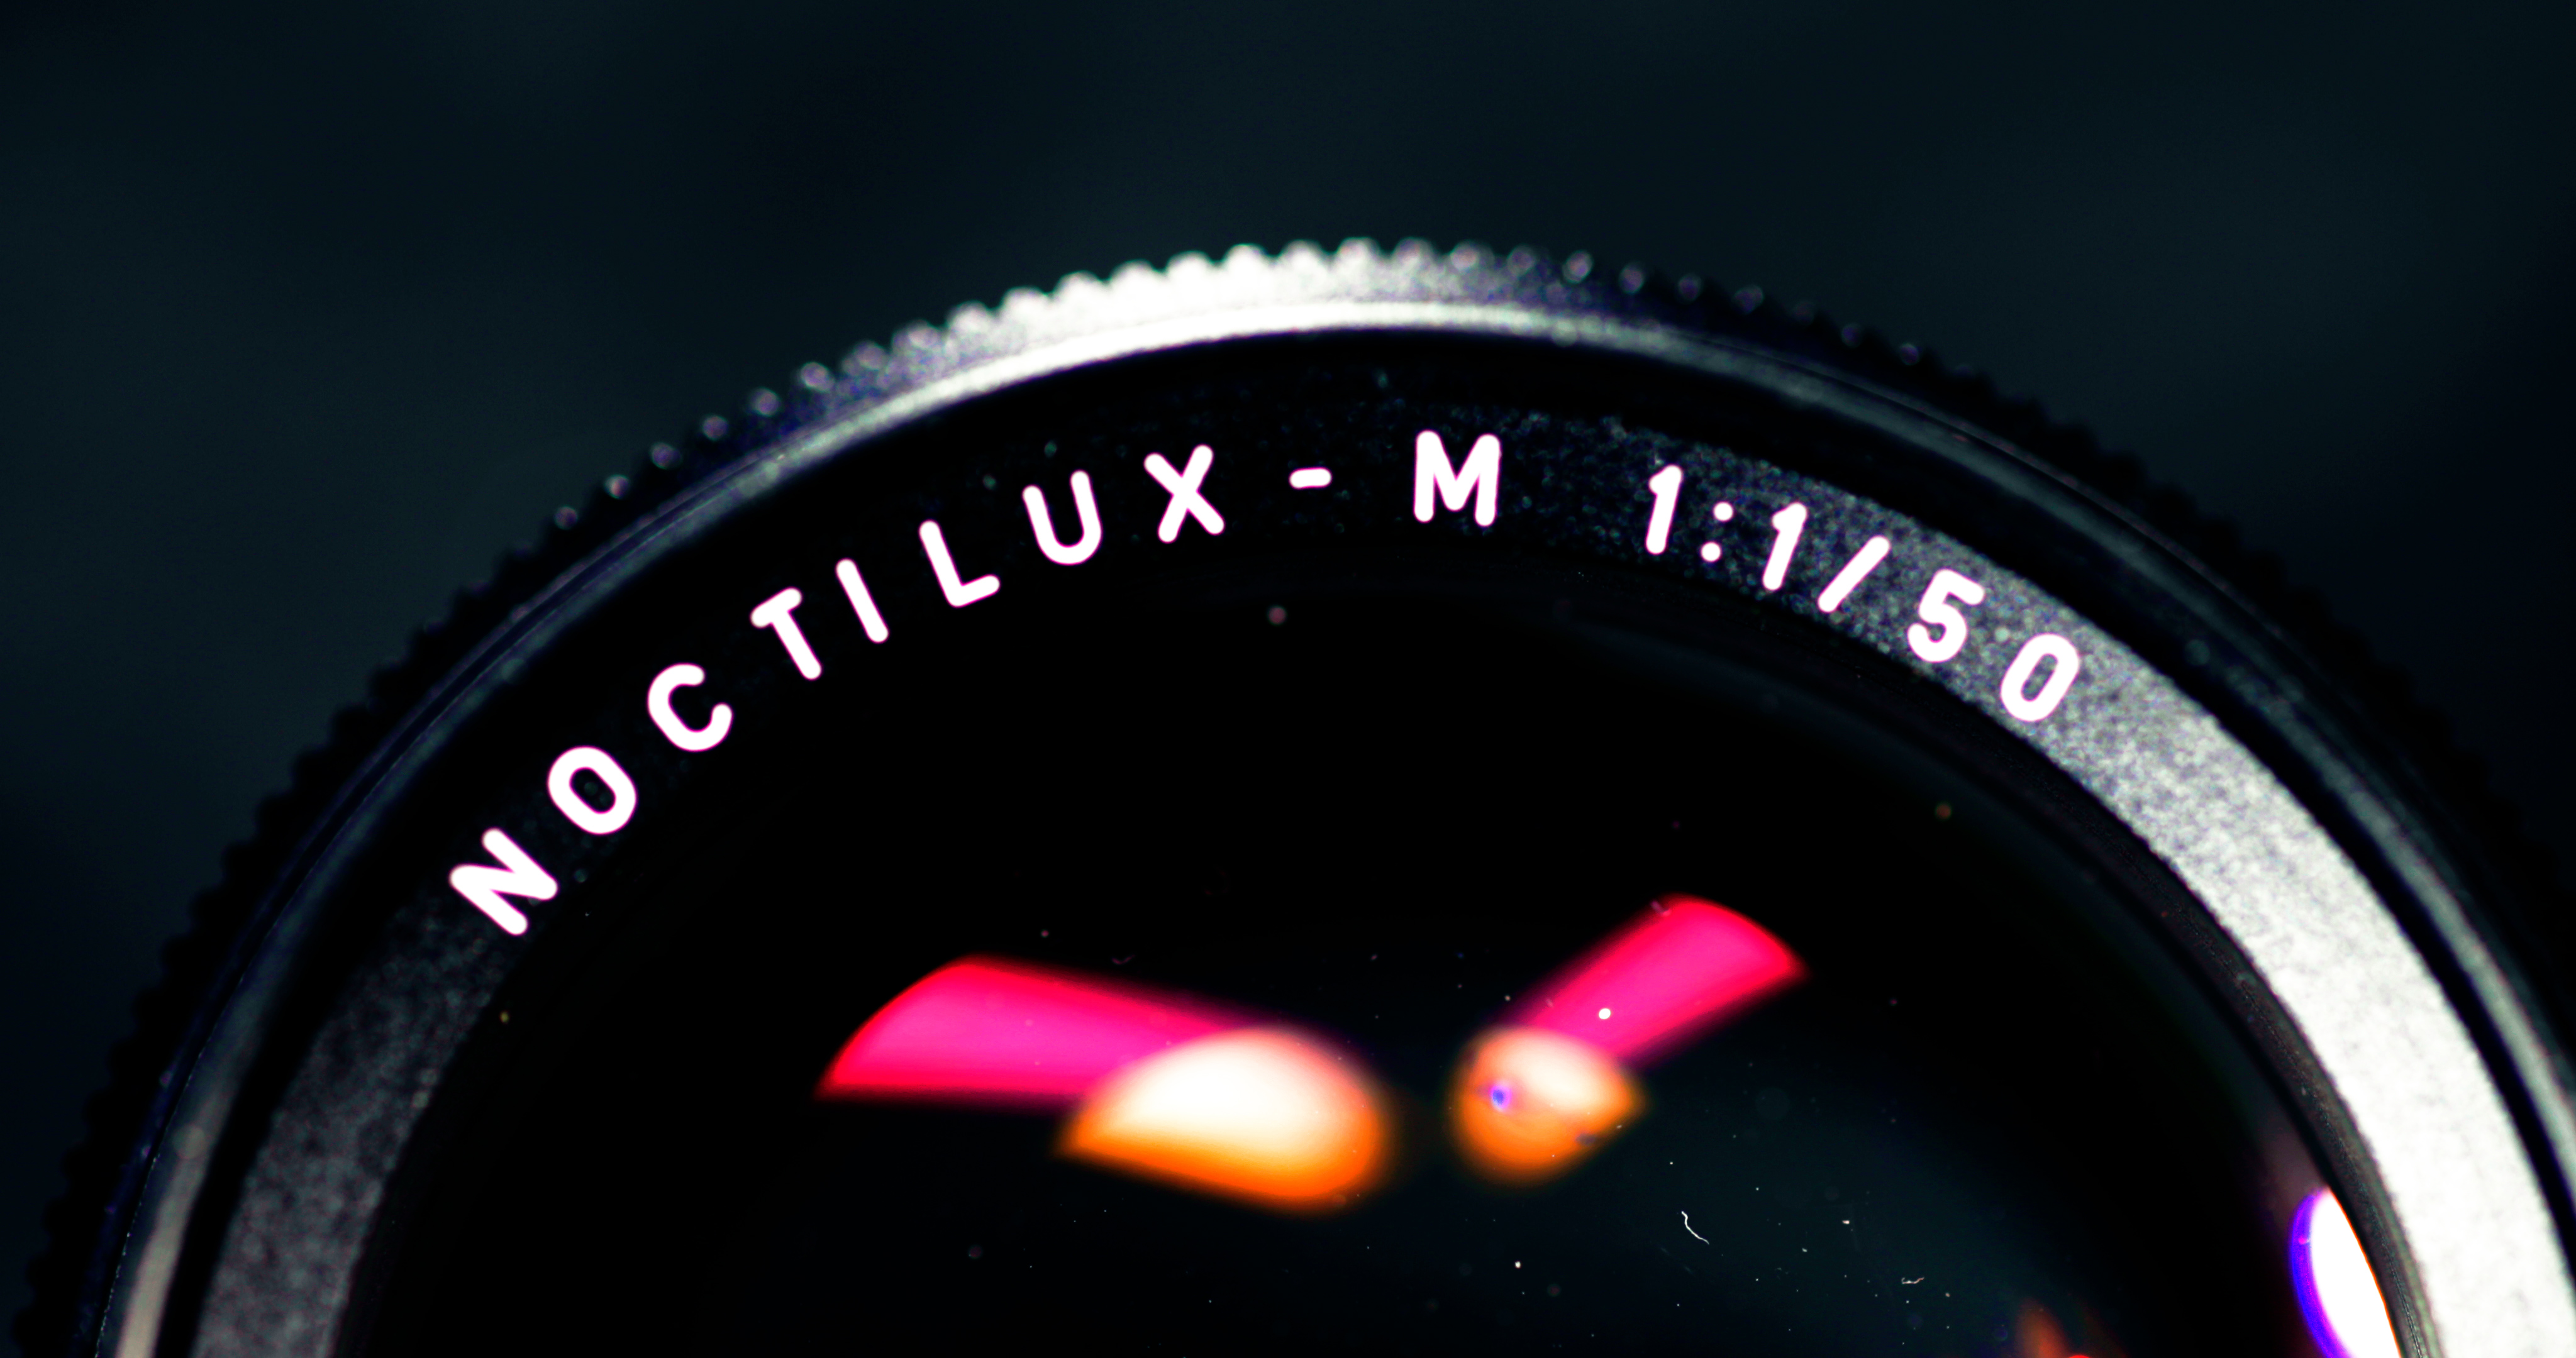 Leica Noctilux 50mm Lens – A Historical Review - Leica Review - Oz Yilmaz